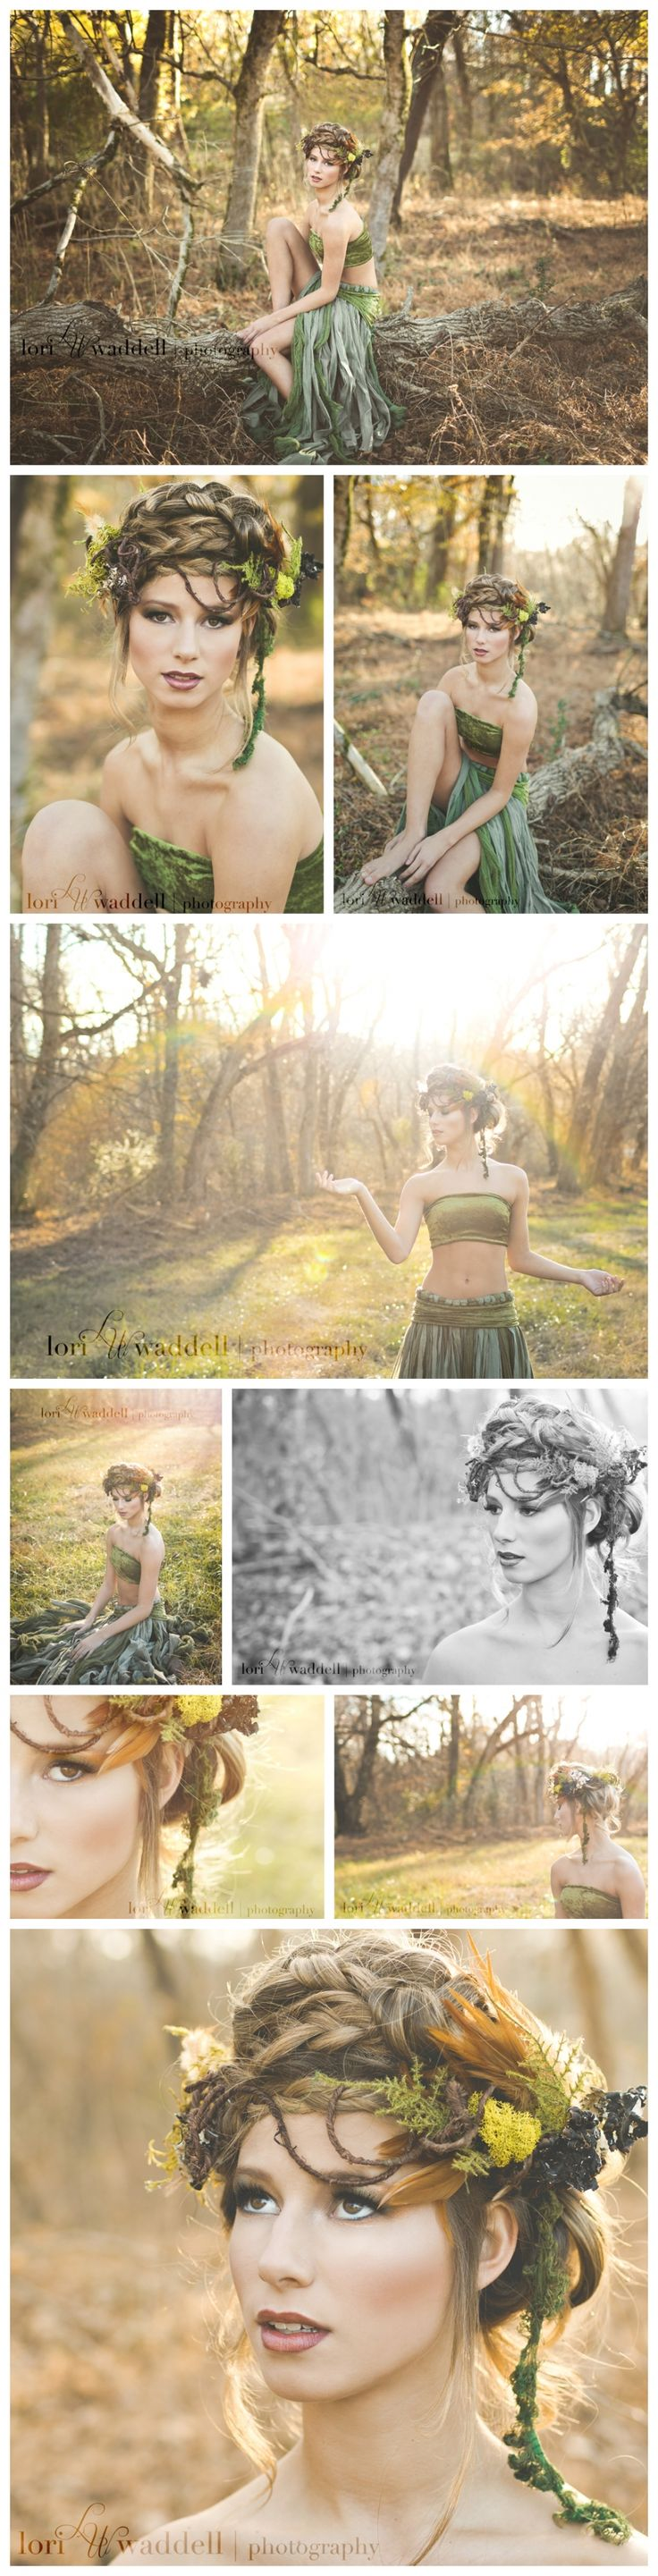 Concept Photographer Atlanta, Styled photo session Atlanta | Marietta, | Lori Waddell Photography